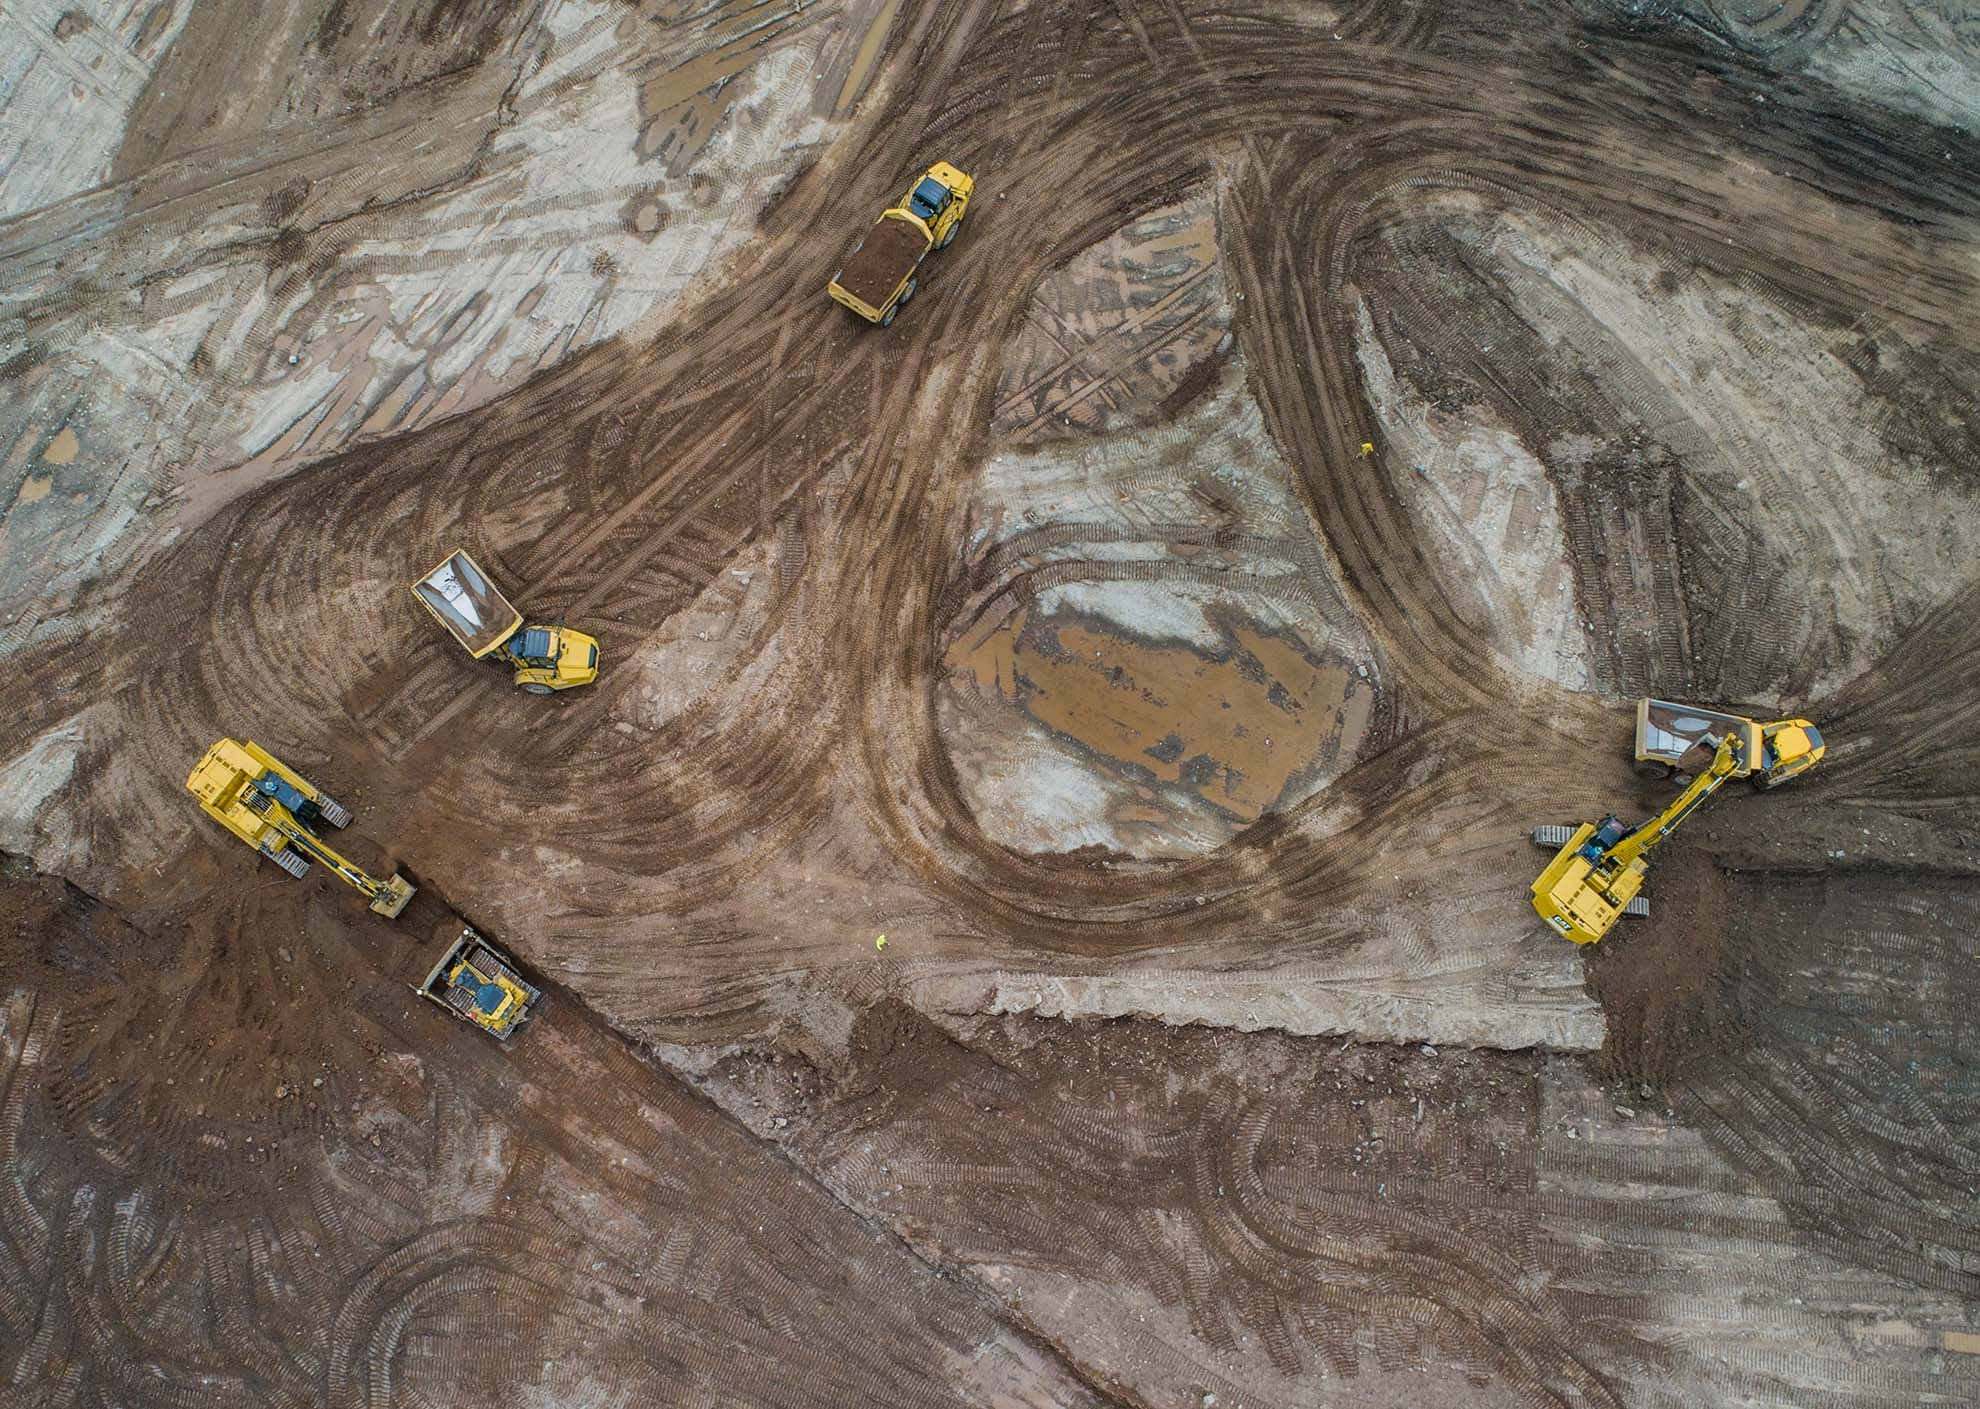 Drone Photograph of Nadir view of Excavating equipment Tremley Point Linden New Jersey